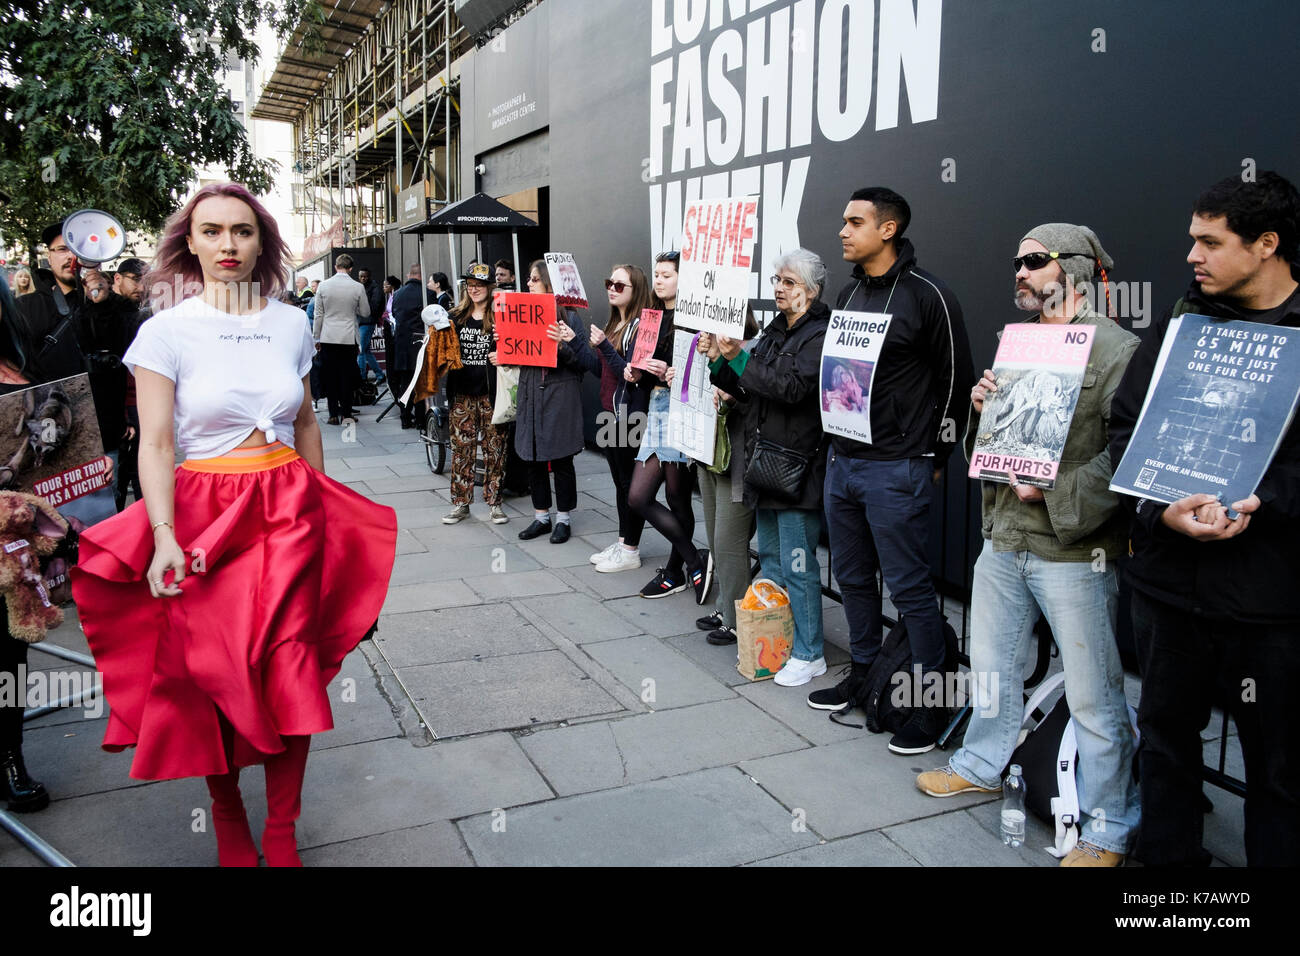 London, UK. 15th September 2017  Animal rights activists protest outside the venue for London Fashion Week at the use of animal fur in the fashion industry - Stock Image